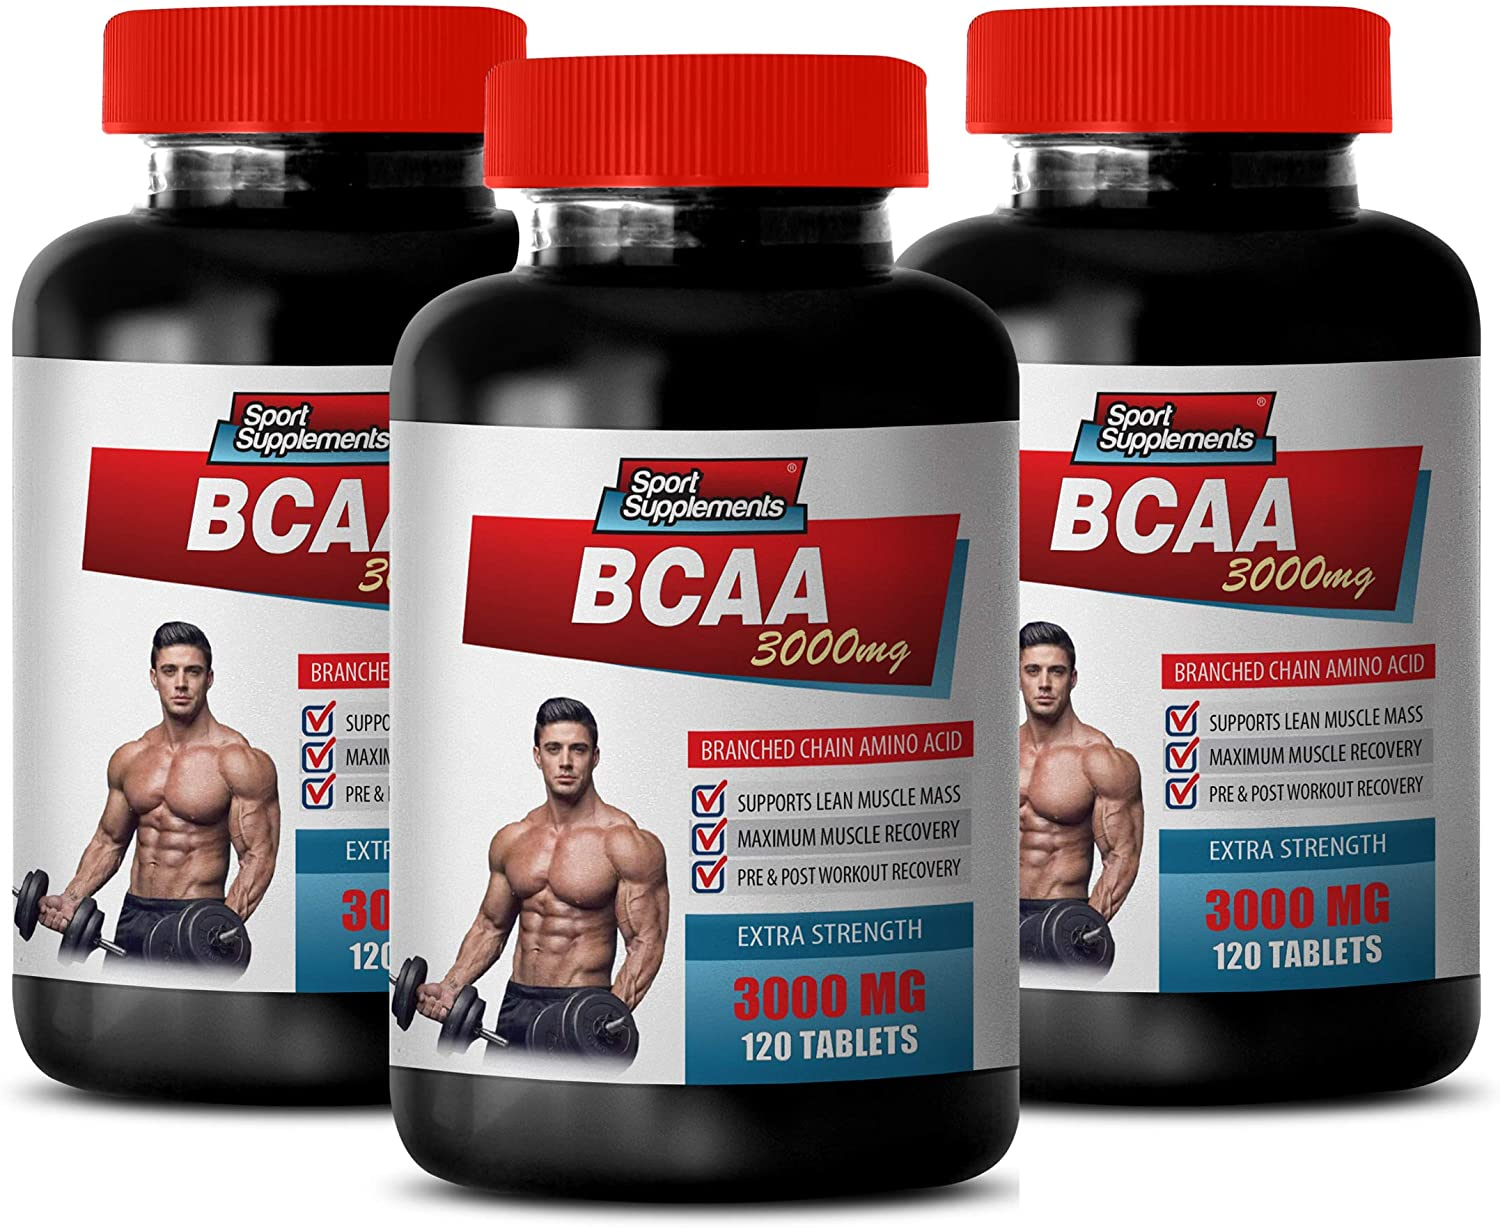 Muscle Pump Supplements - BCAA 3000MG - BRANCHED Chain Amino ACIDS - bcaa Vitamins - 3 Bottles 360 Tablets